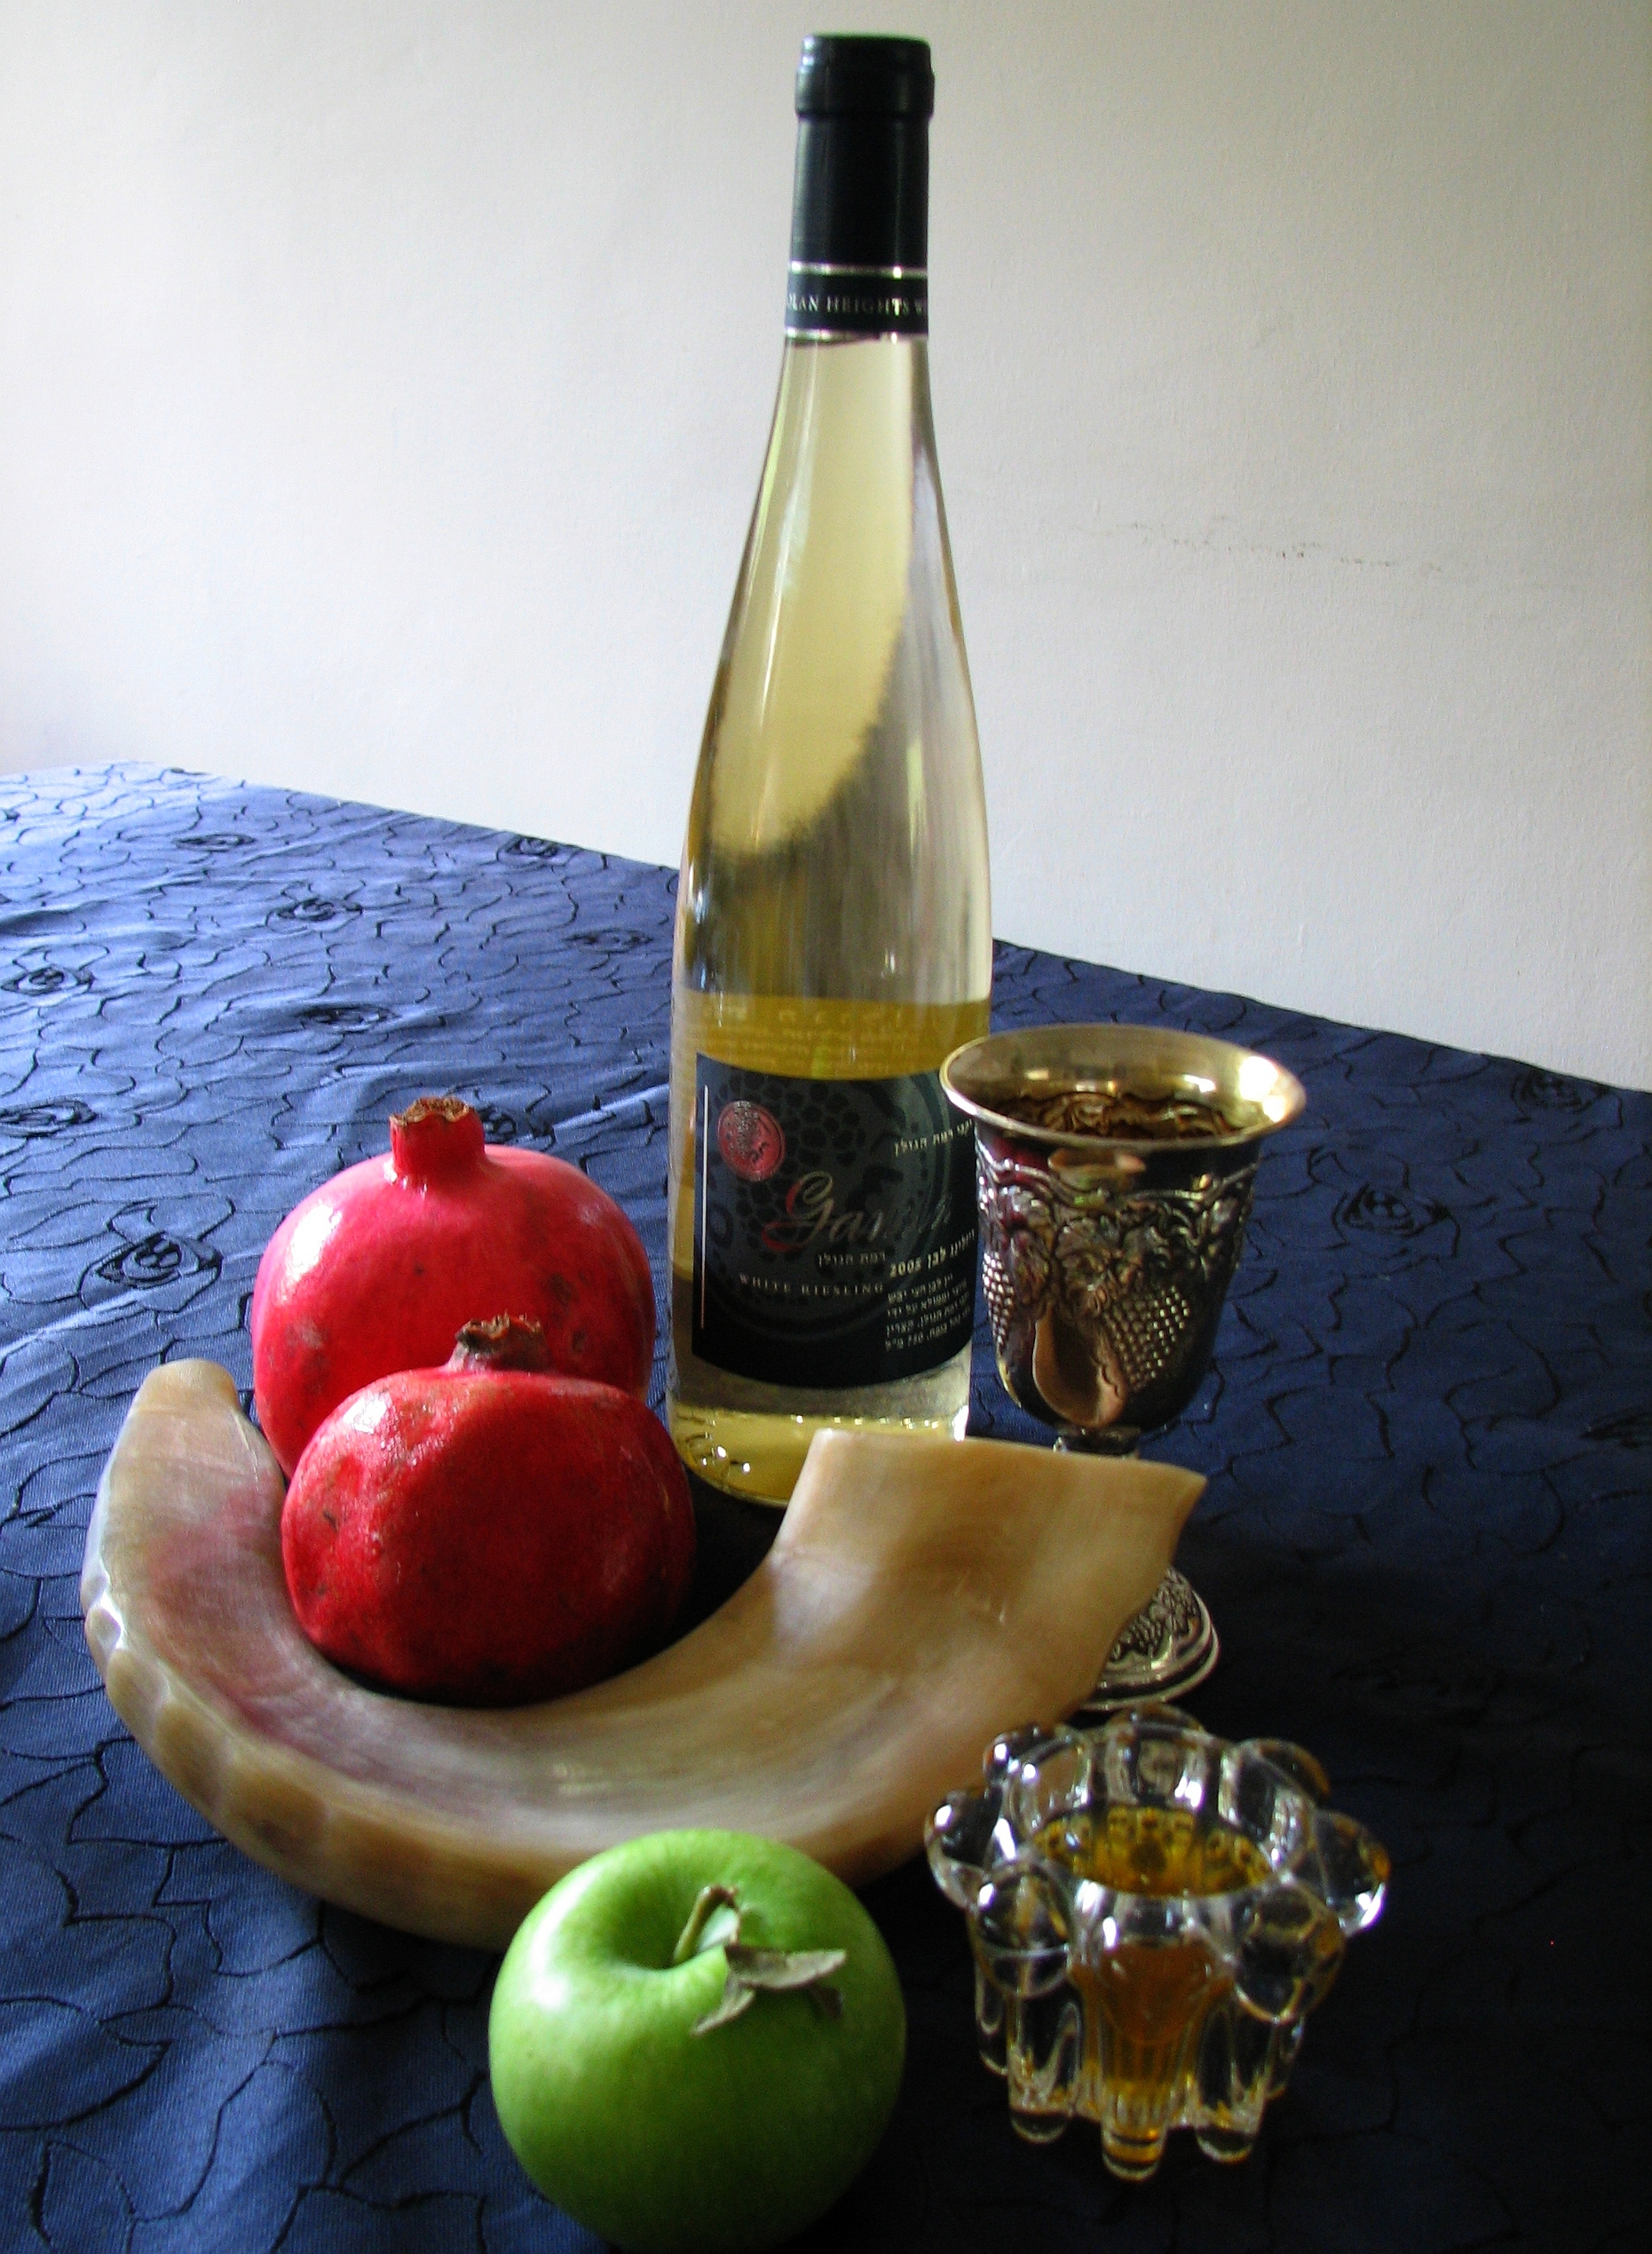 Rosh hashanah wikipedia traditional rosh hashanah foods apples dipped in honey pomegranates wine for kiddush m4hsunfo